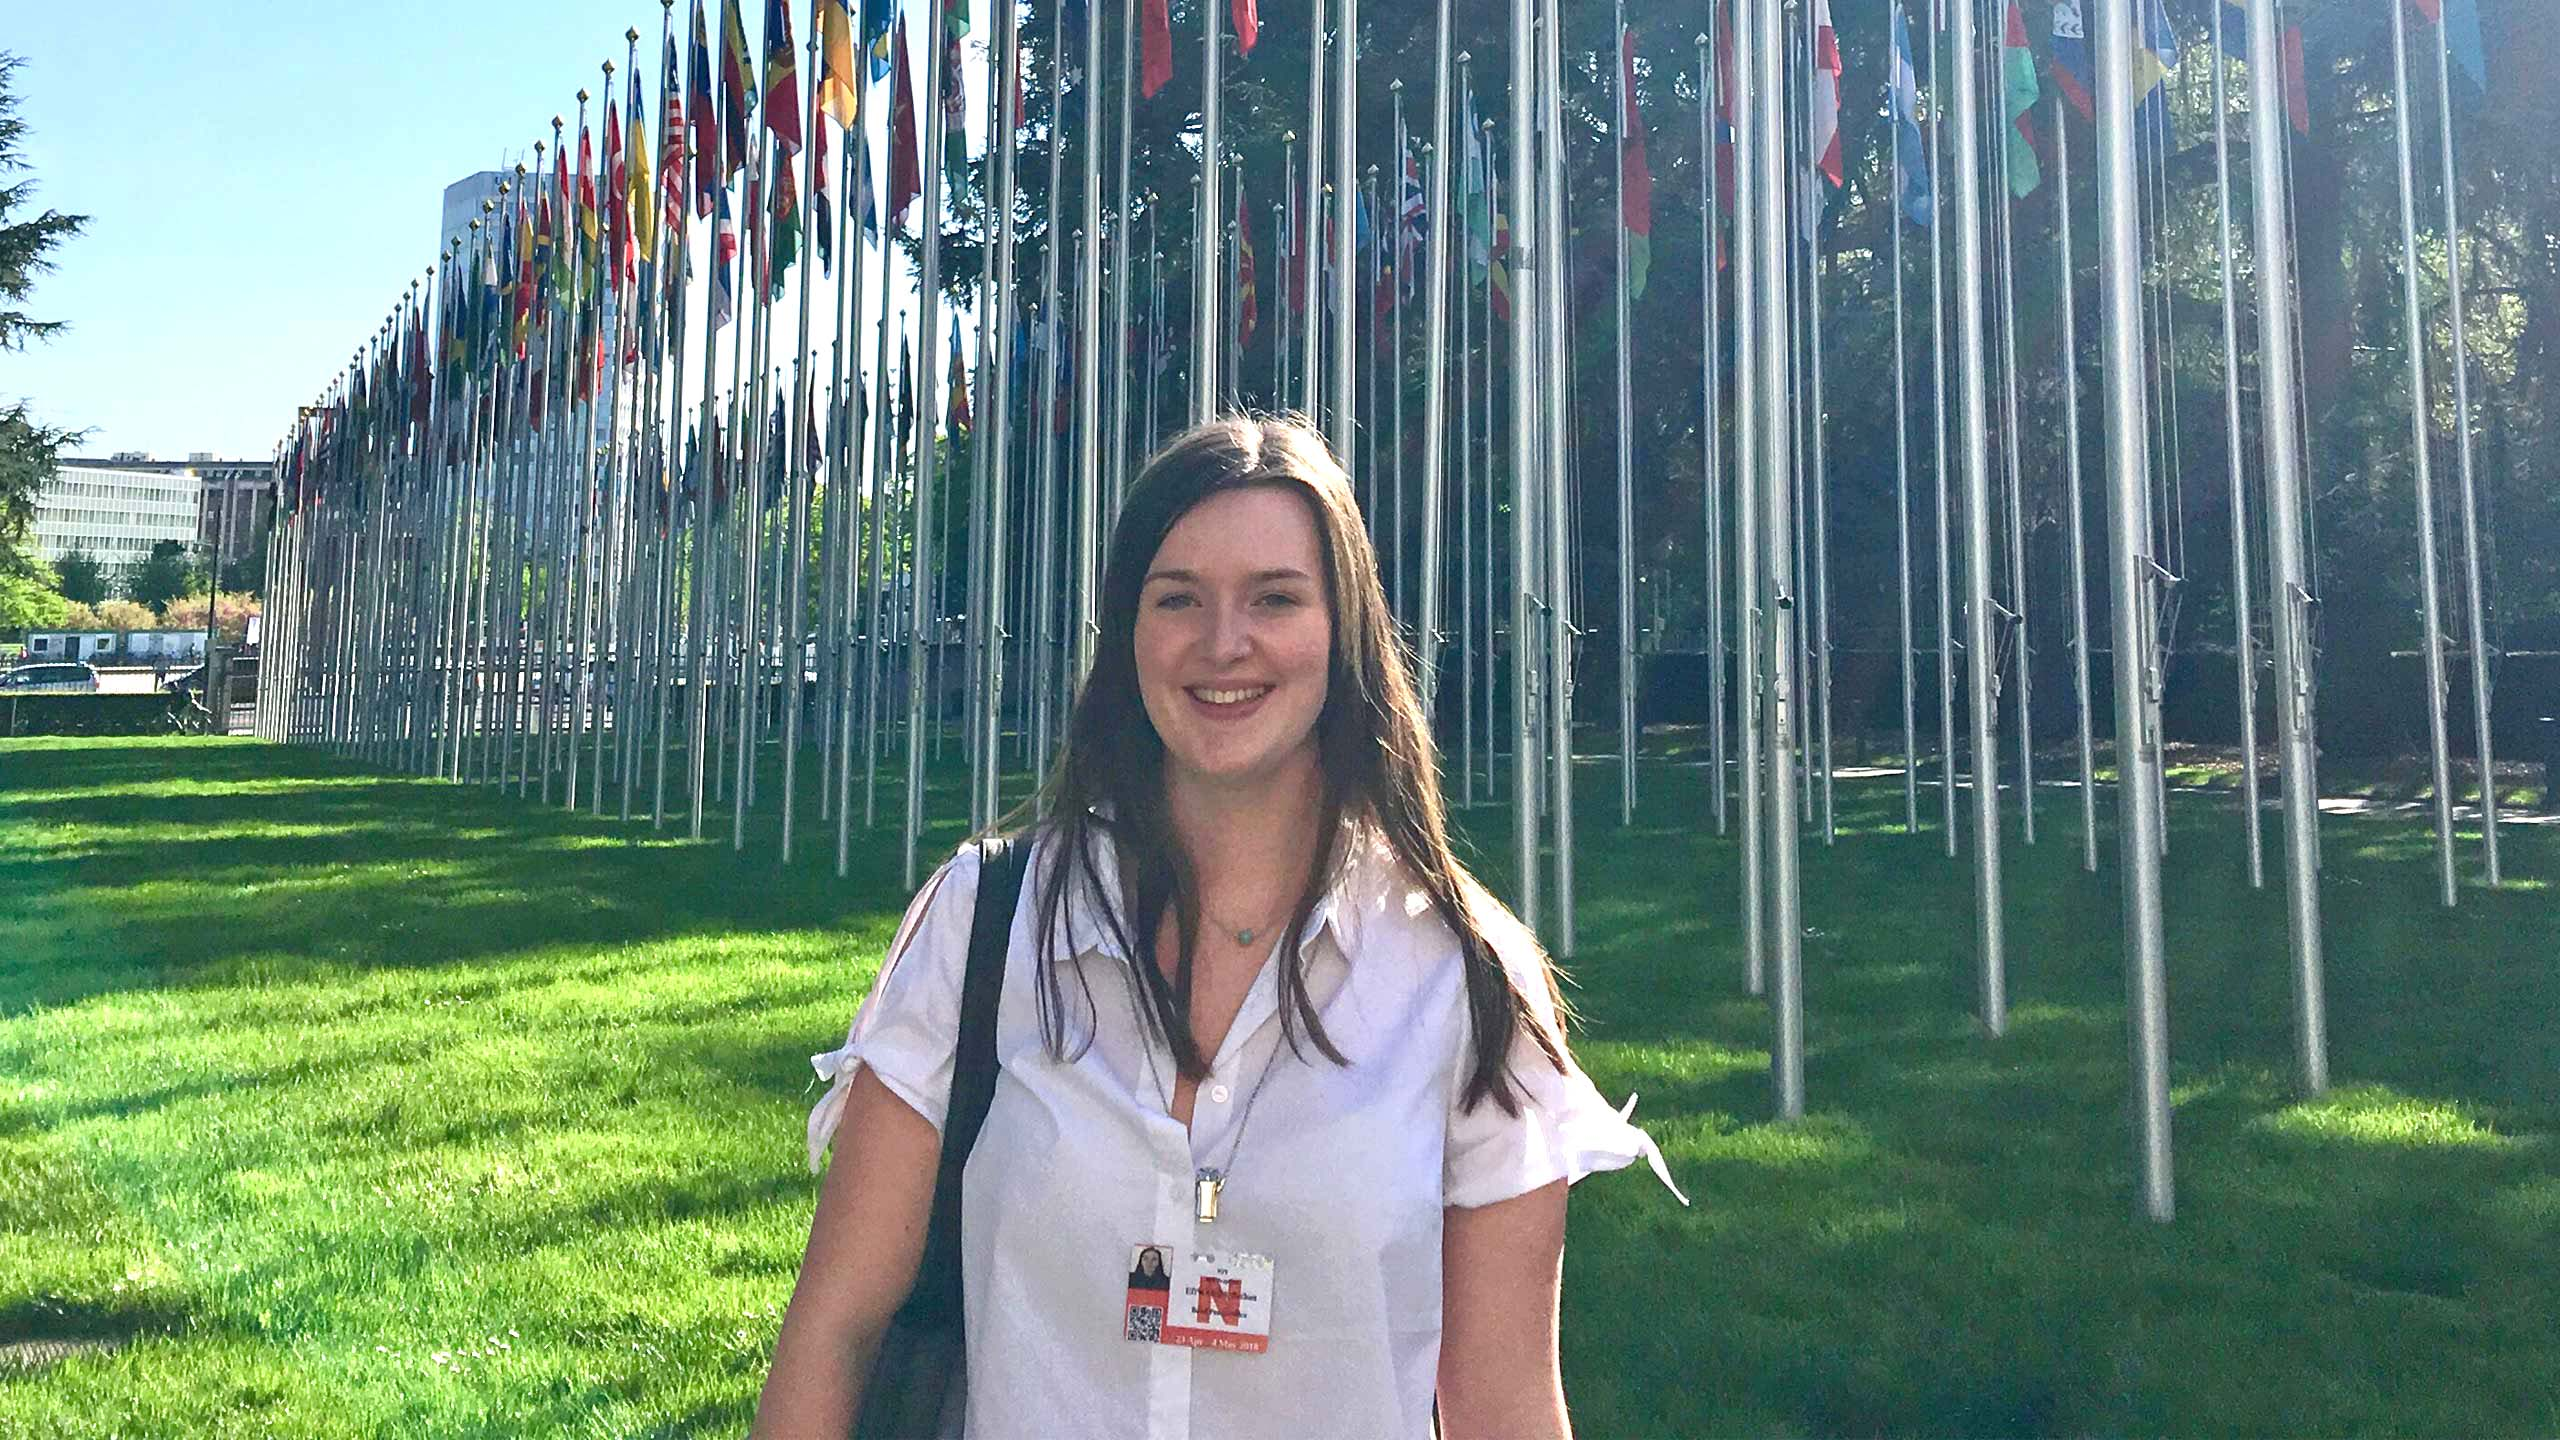 A student on placement outside the UN HQ